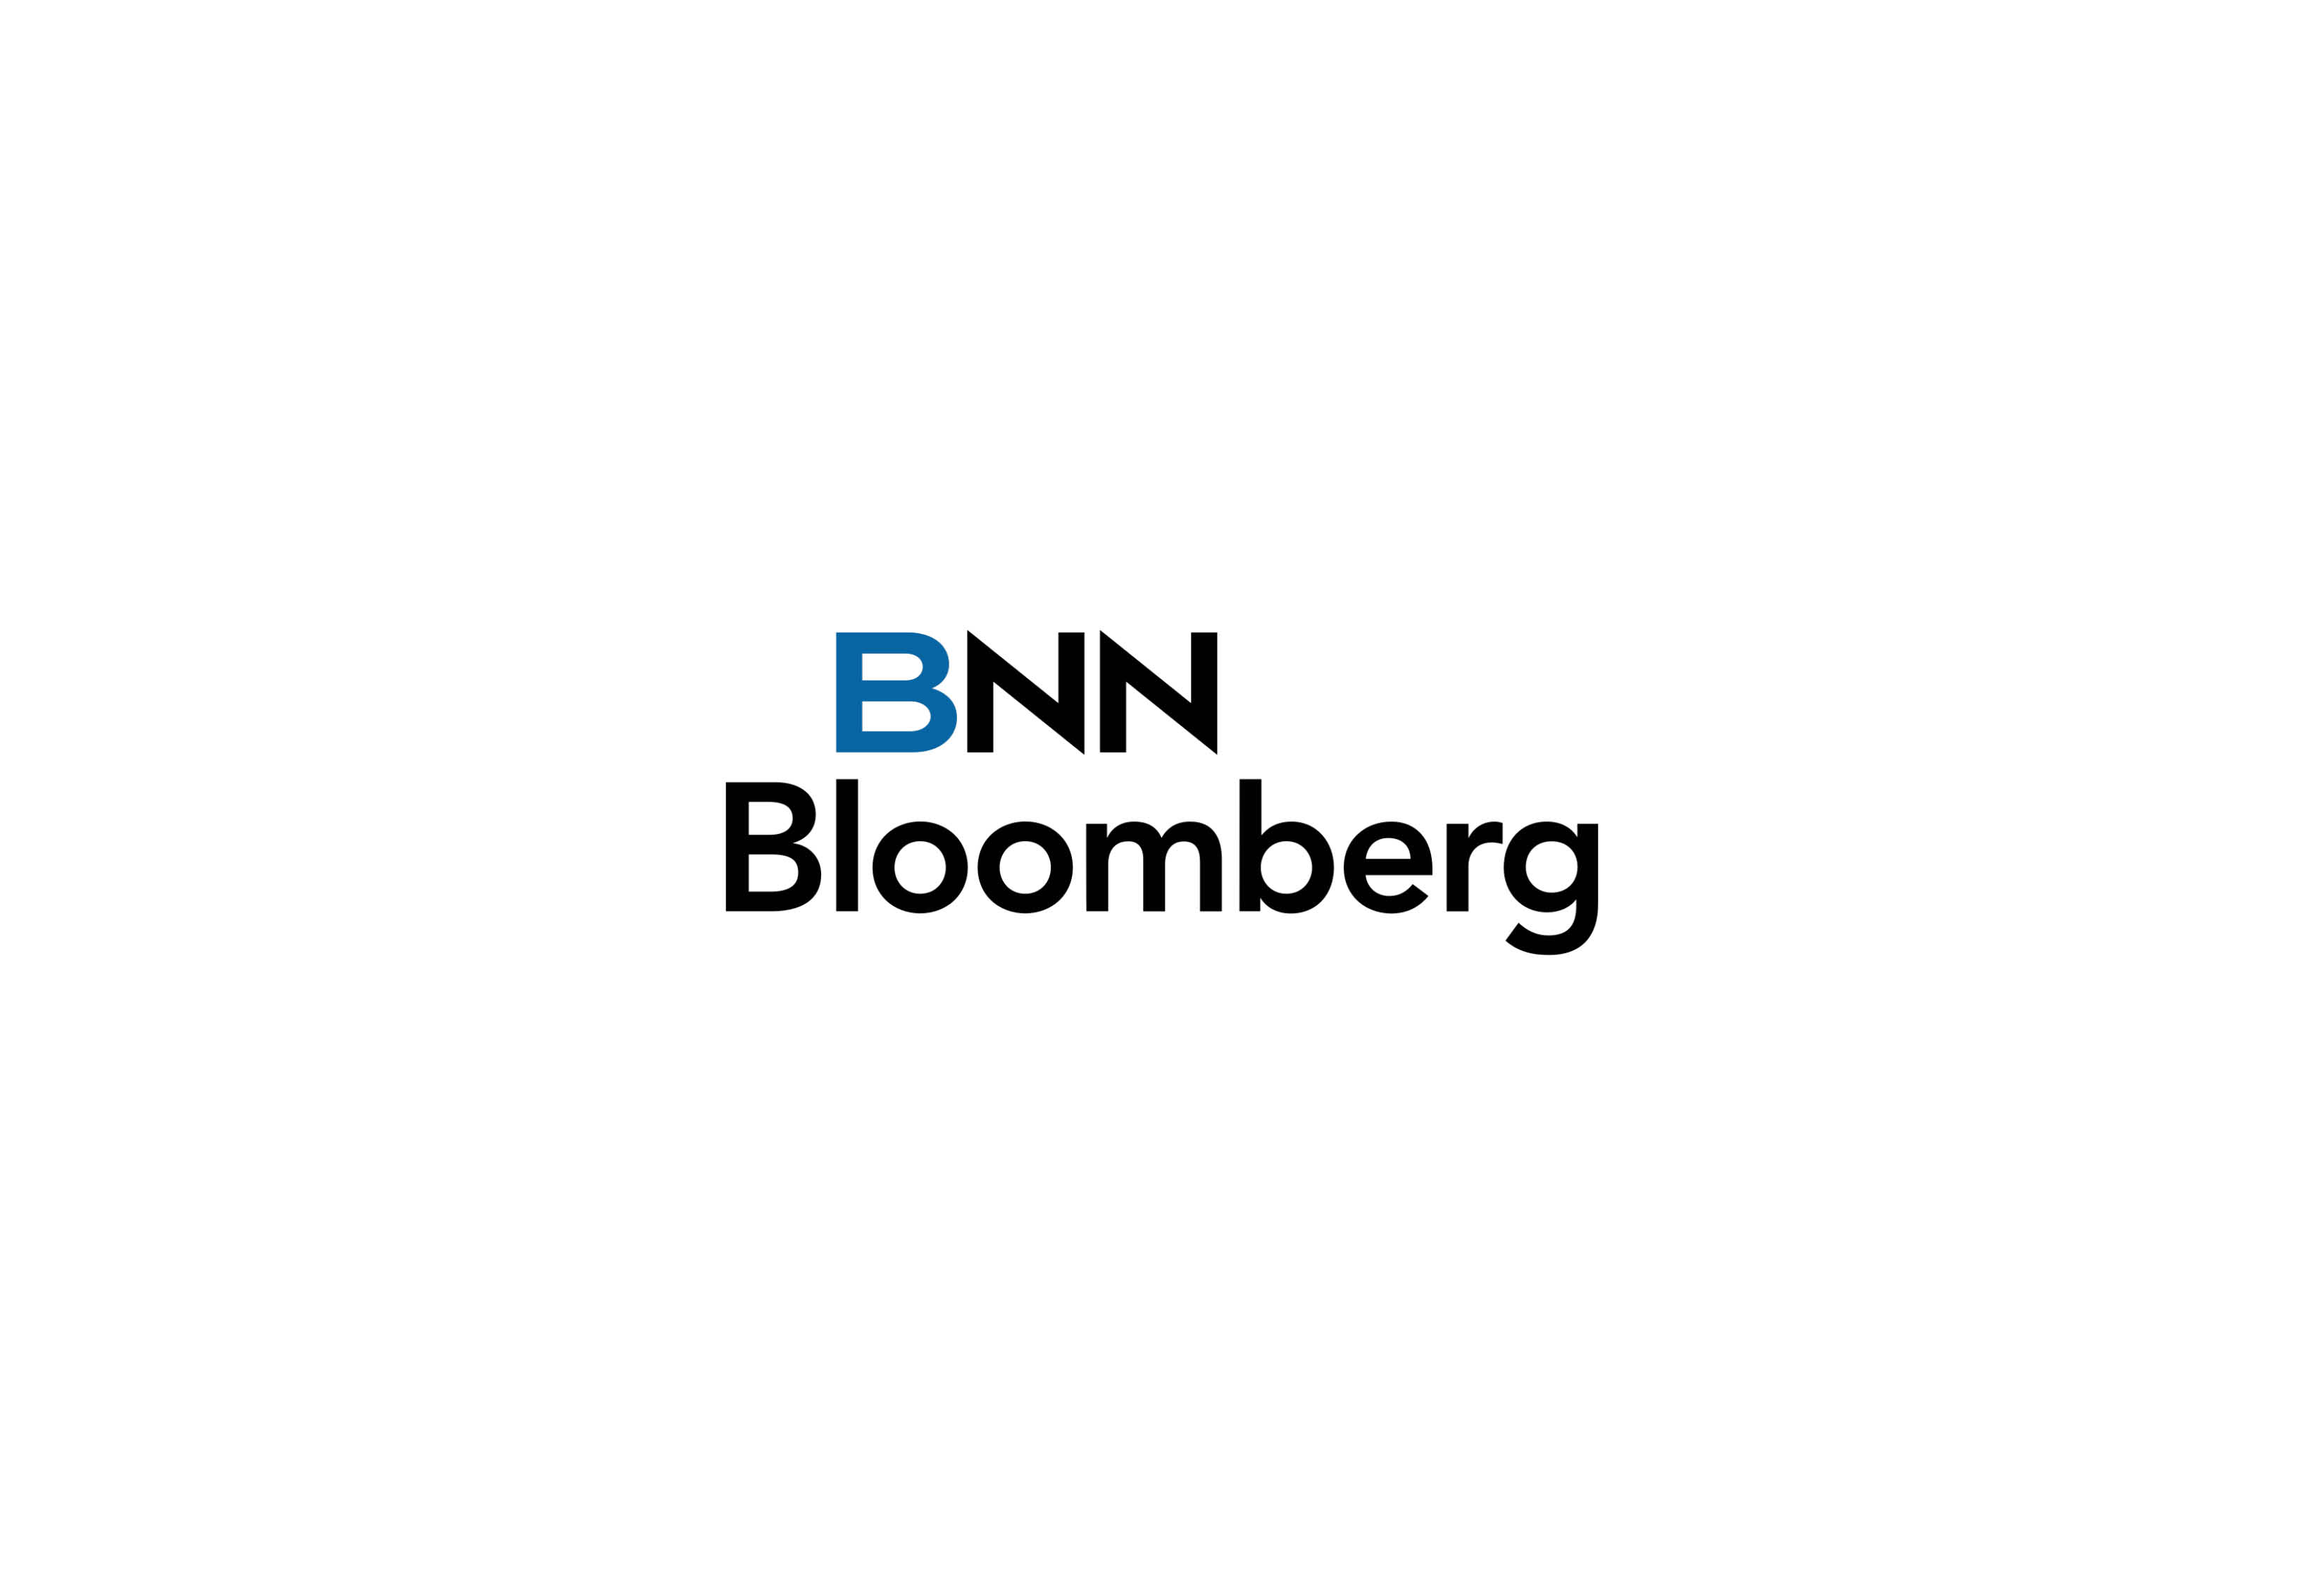 BNN,Bloomberg,BNN Bloomberg,Julian Klymochko,Investment Officer,Accelerate,CEO Accelerate,Accelerate Shares,Accelerate Financial,Accelerate Financial Technologies,Accelerate,TSX,ALFA,ATSX,HDGE,Toronto Stock Exchange